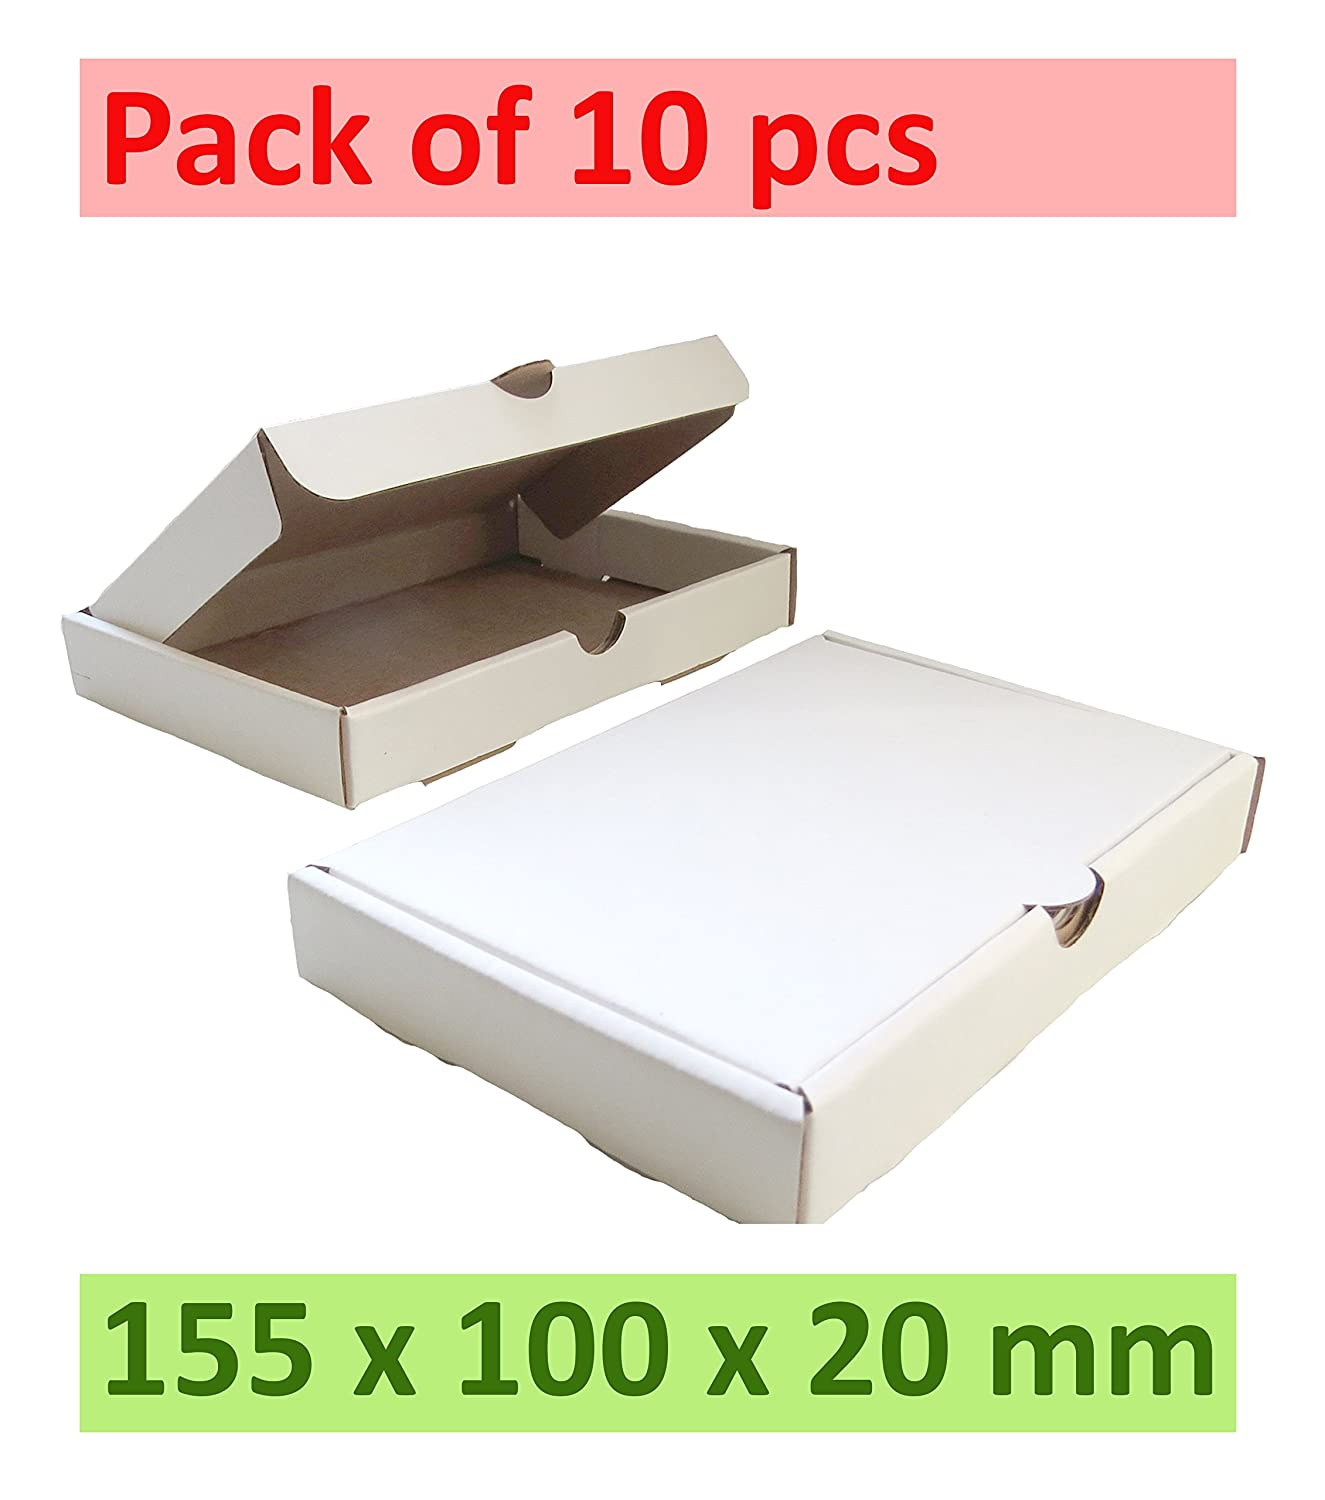 Amazon.com : 10 x White Carton Boxes Packaging Cardboard) 6.1